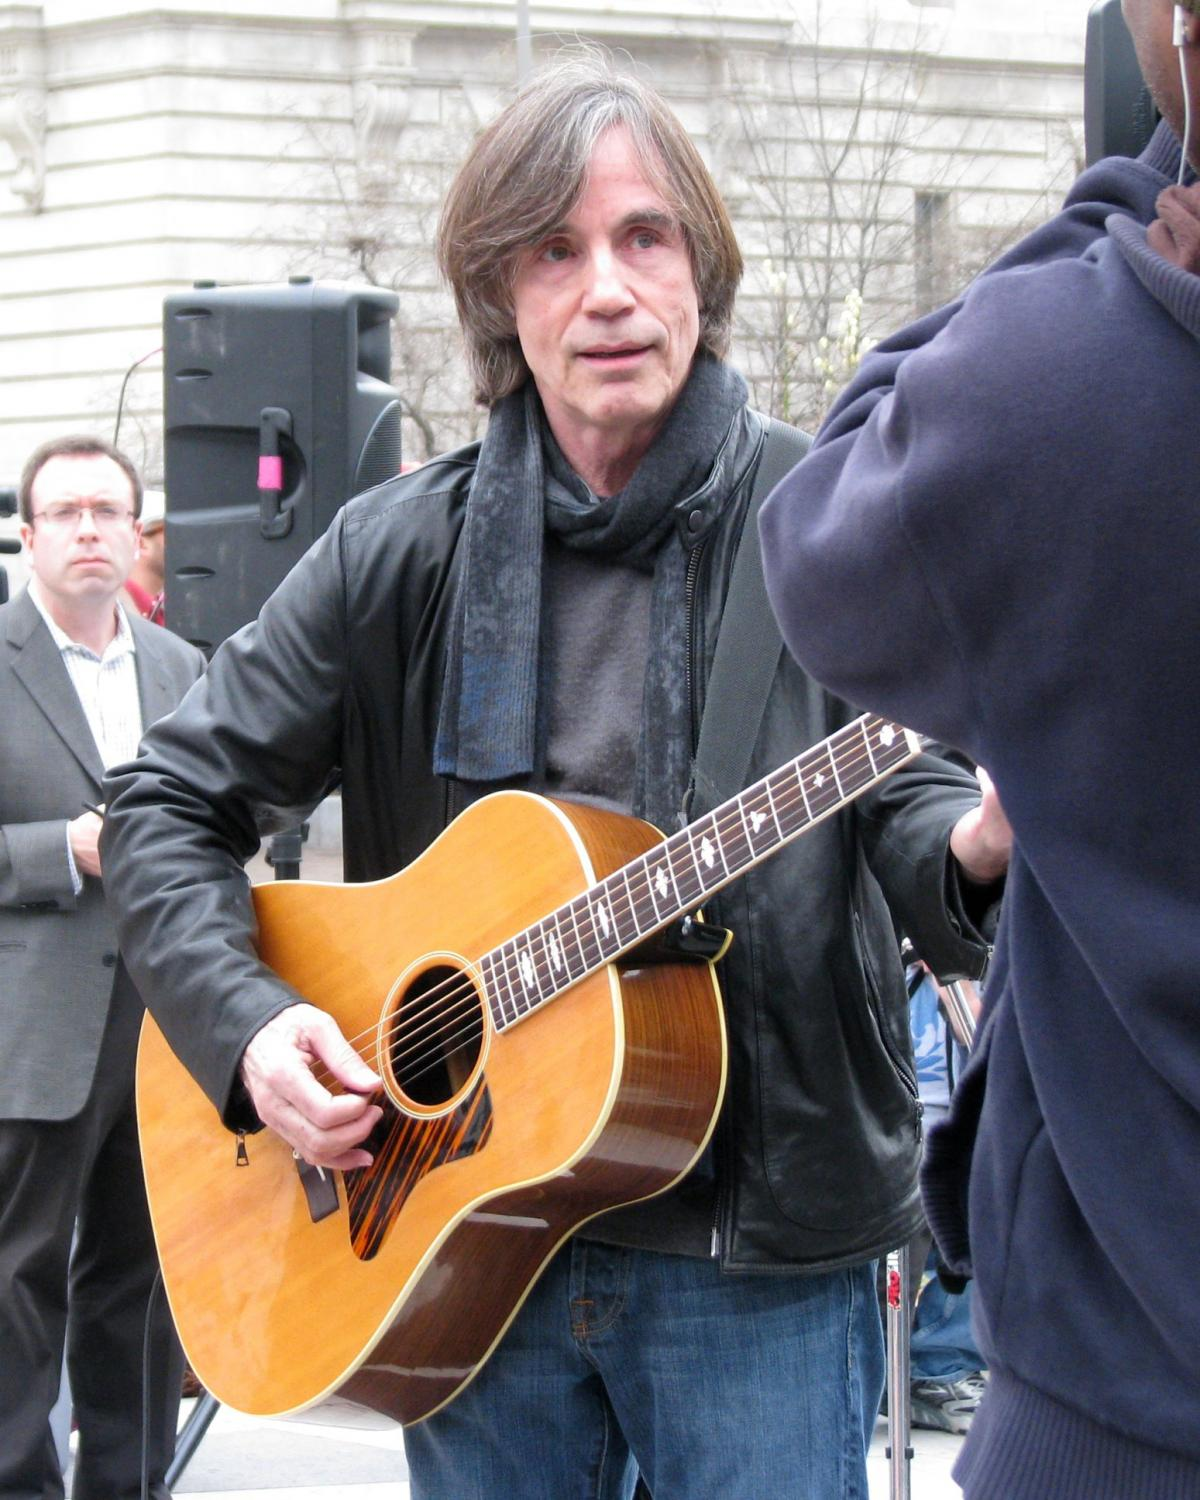 Color photo of a man in a leather jacket playing the guitar.